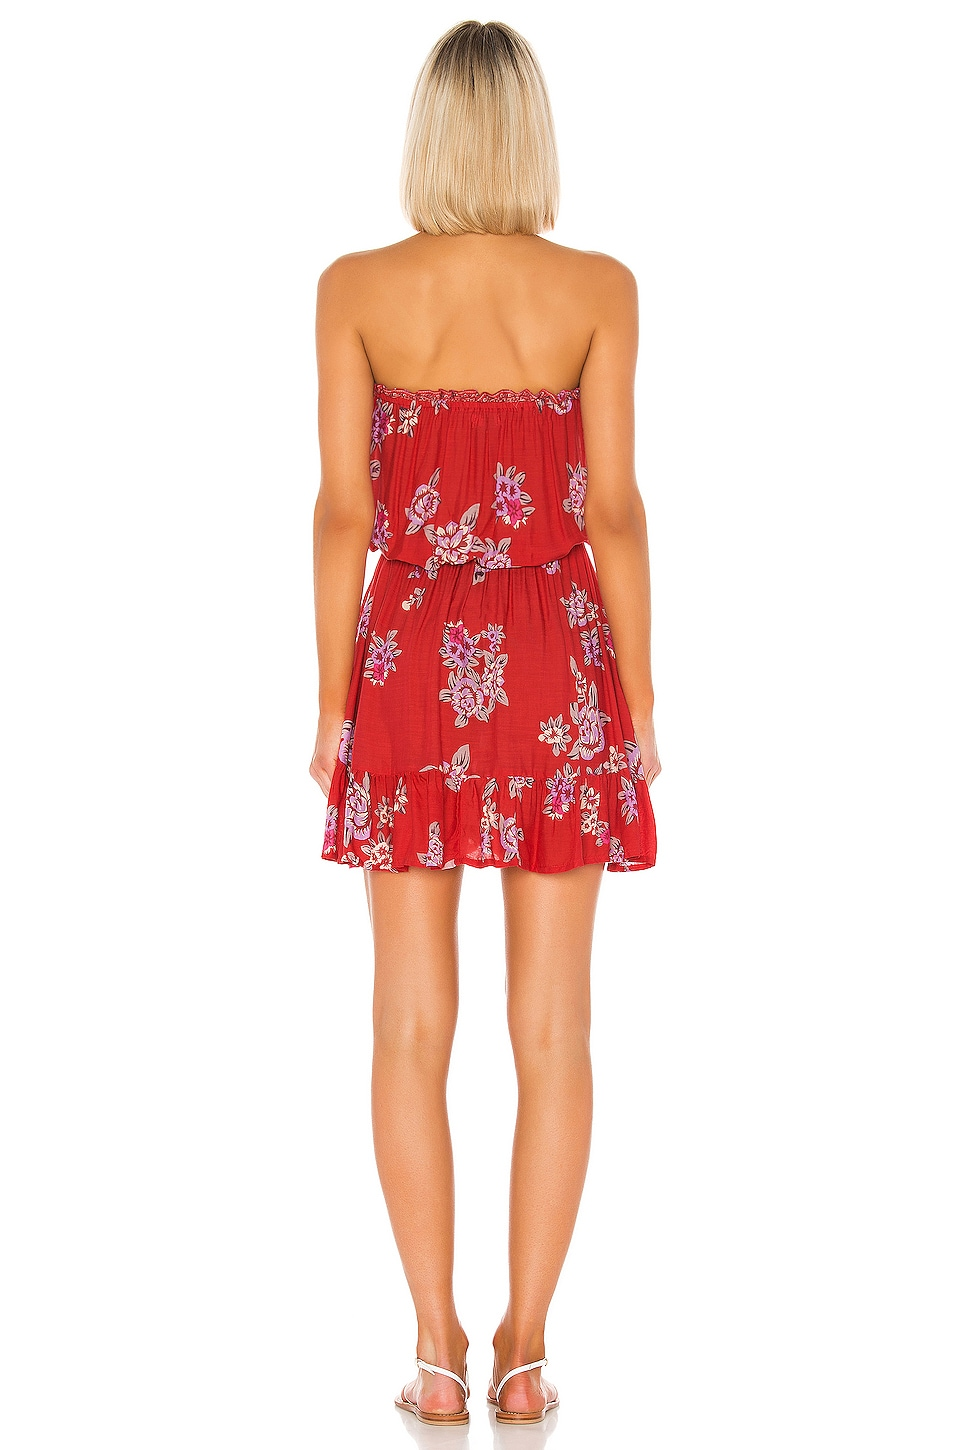 Ryden Mini Dress, view 3, click to view large image.